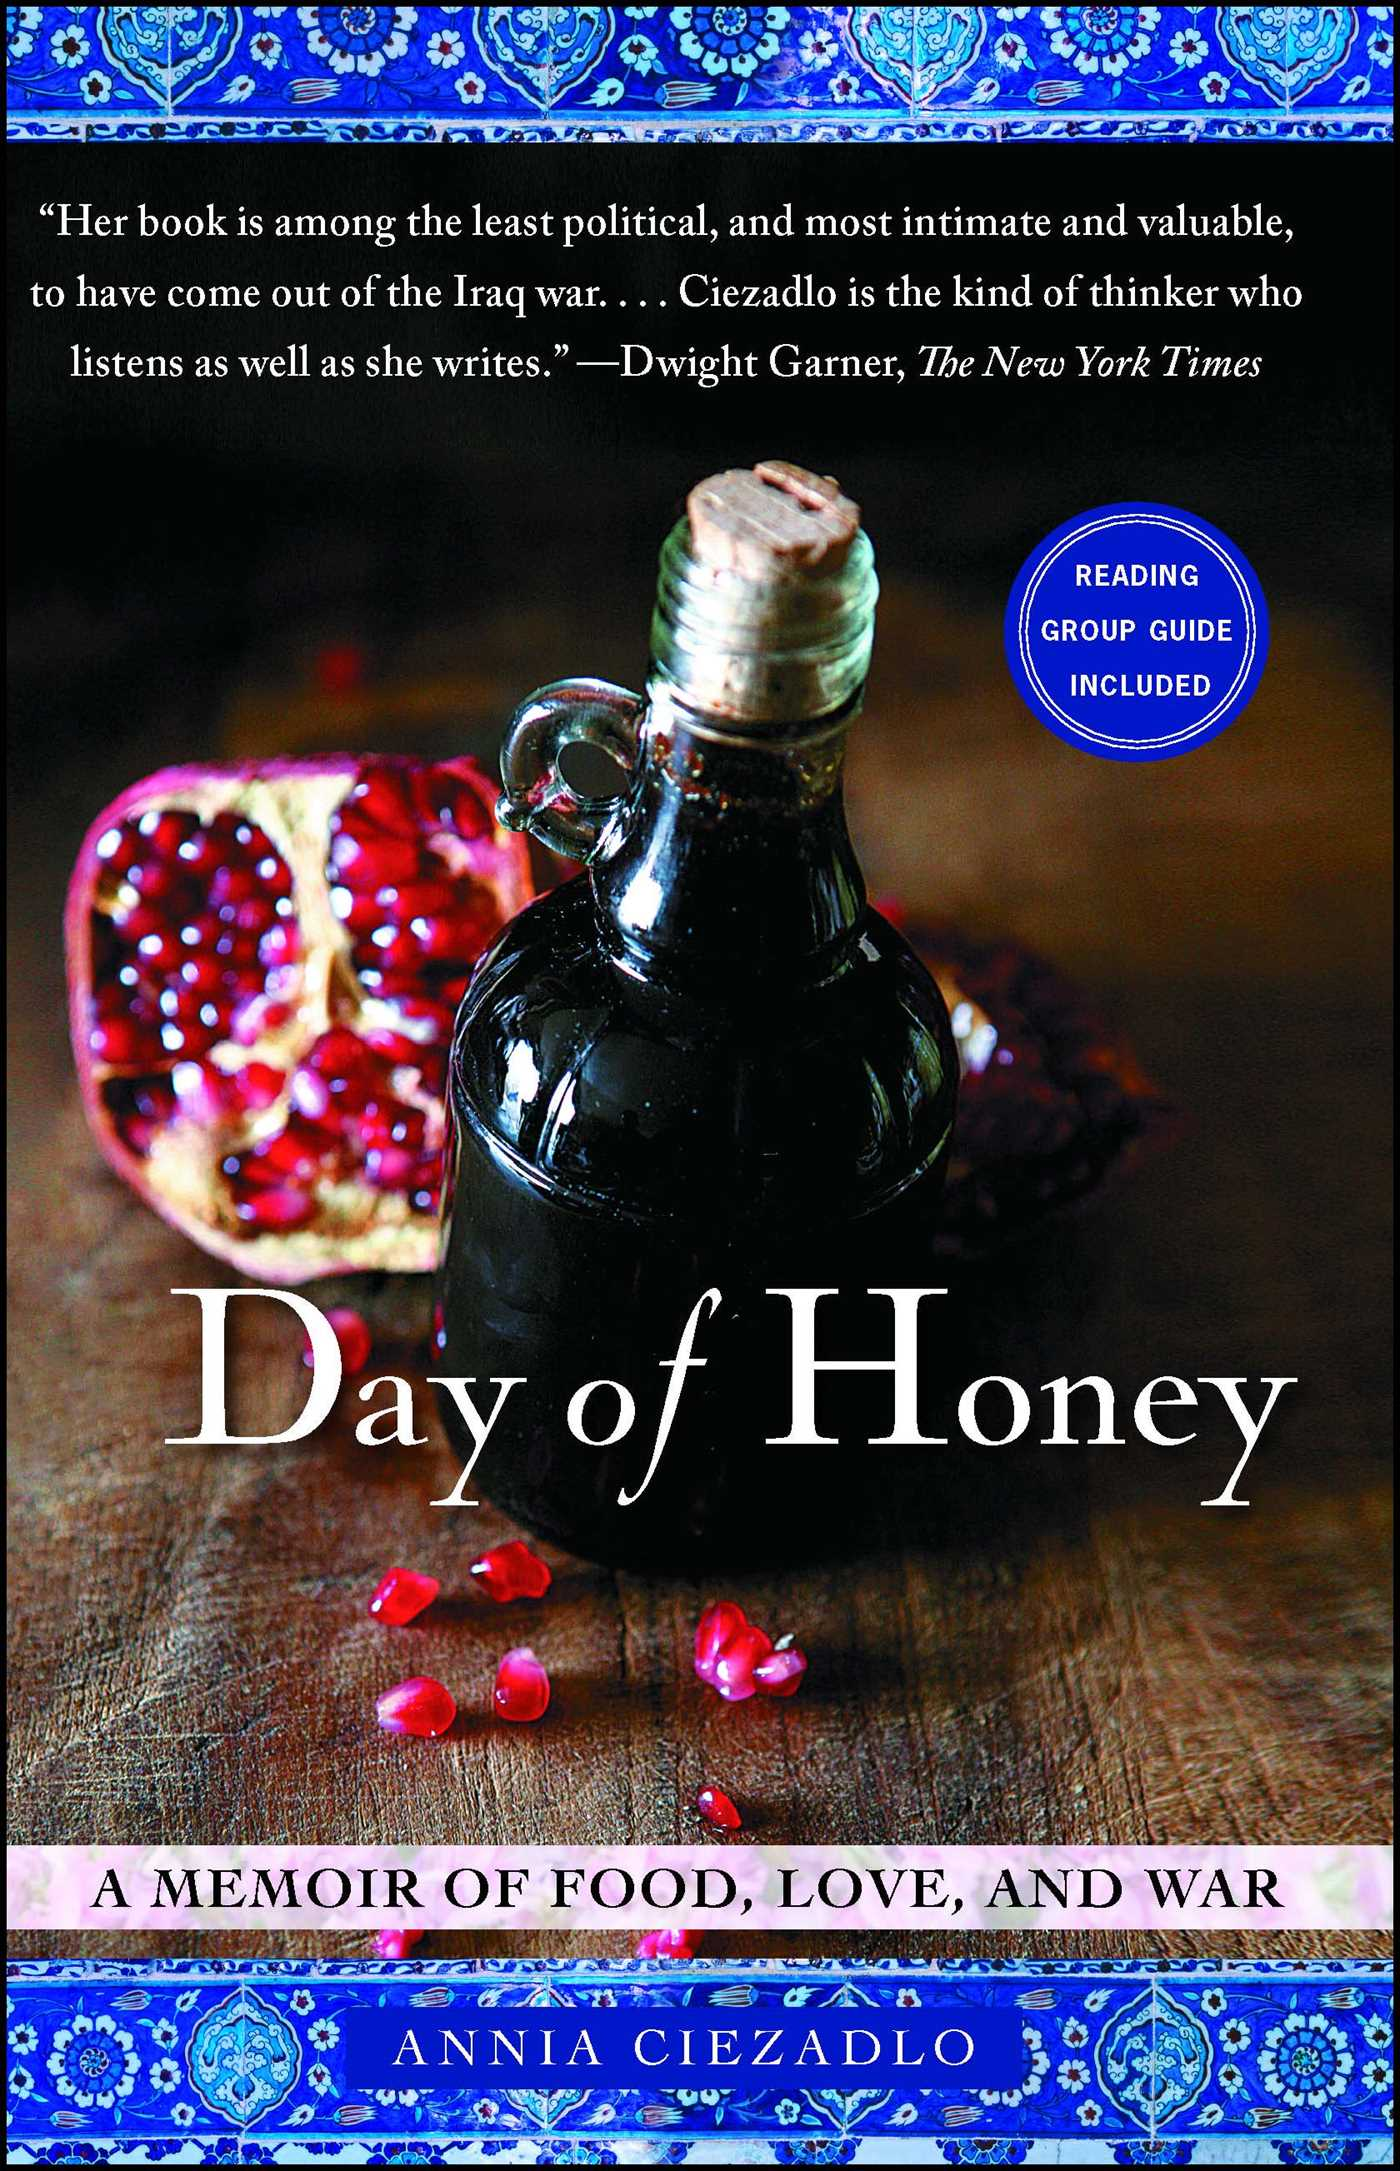 Day of honey 9781416583943 hr